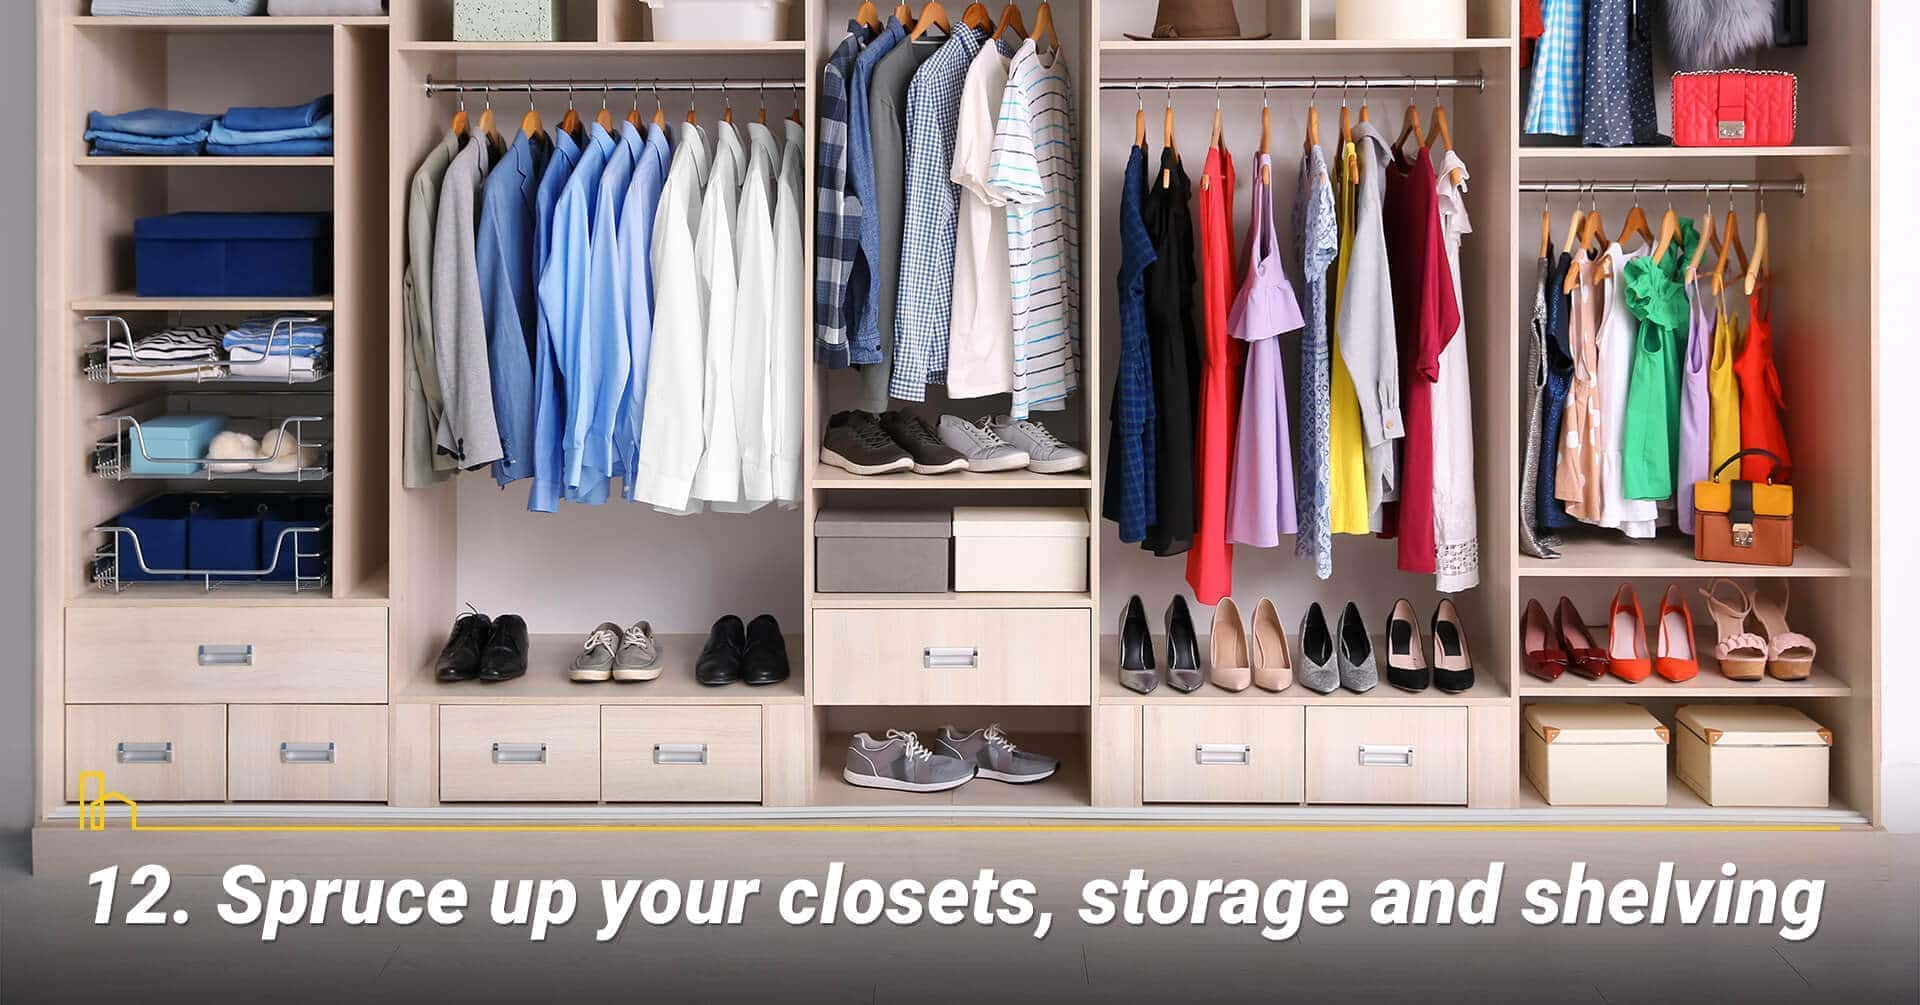 Spruce up your closets, storage and shelving, organize the closets